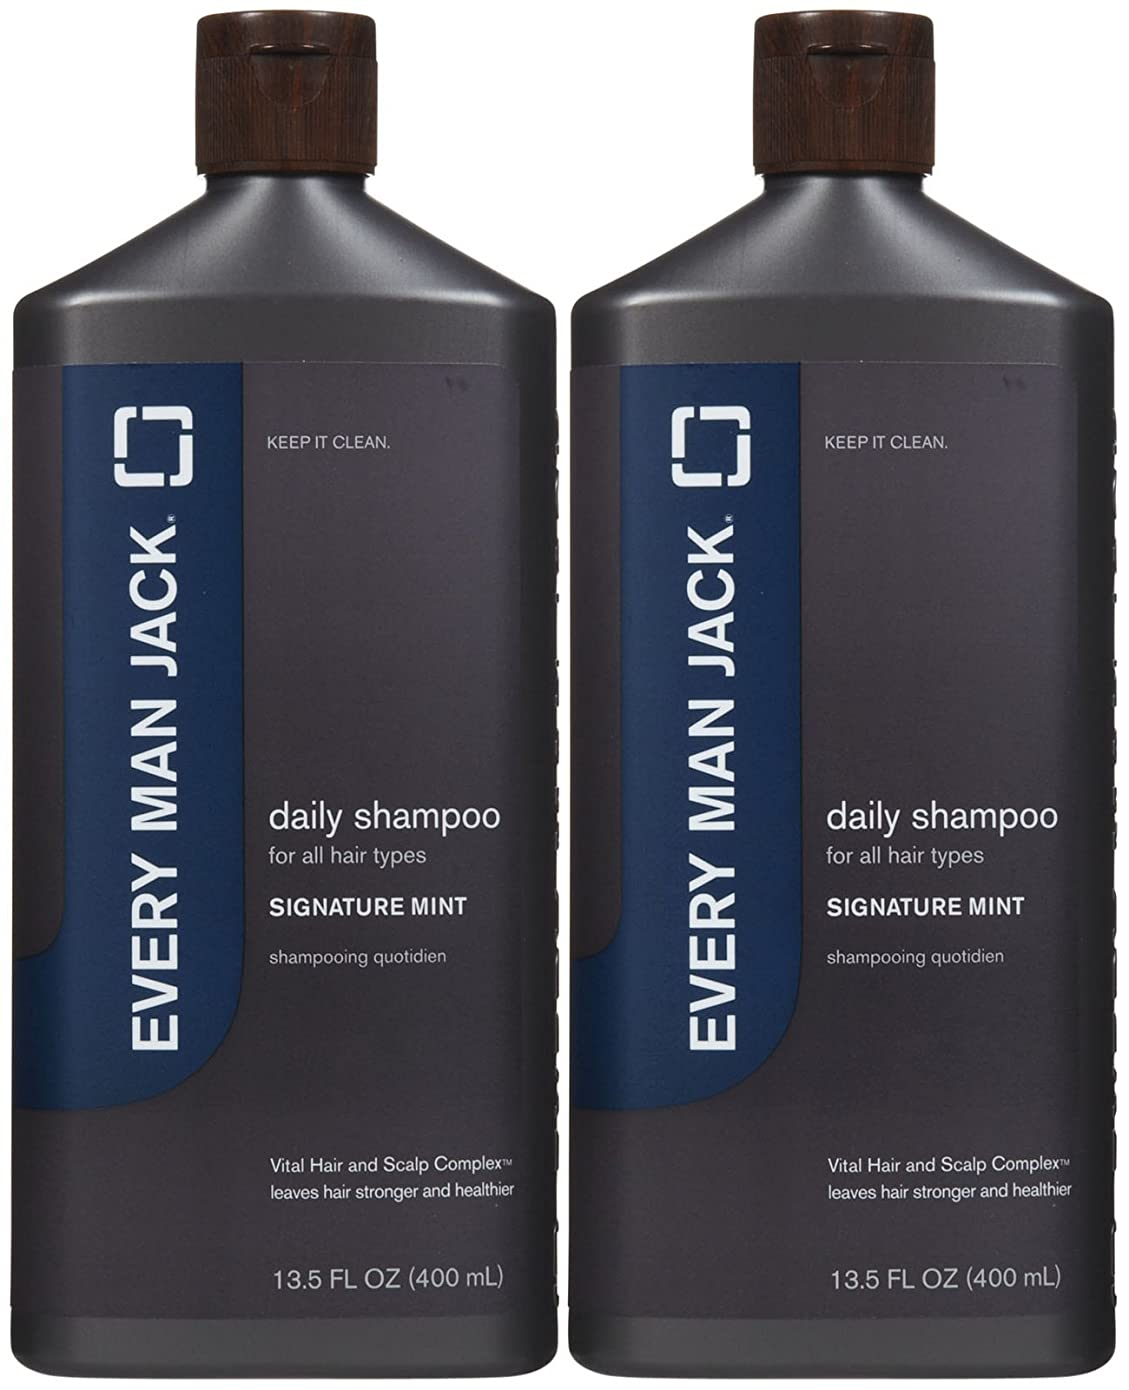 バナー均等に相手Every Man Jack Daily Signature Mint Shampoo for All Hair Types, 13.5 oz, 2 pk by Every Man